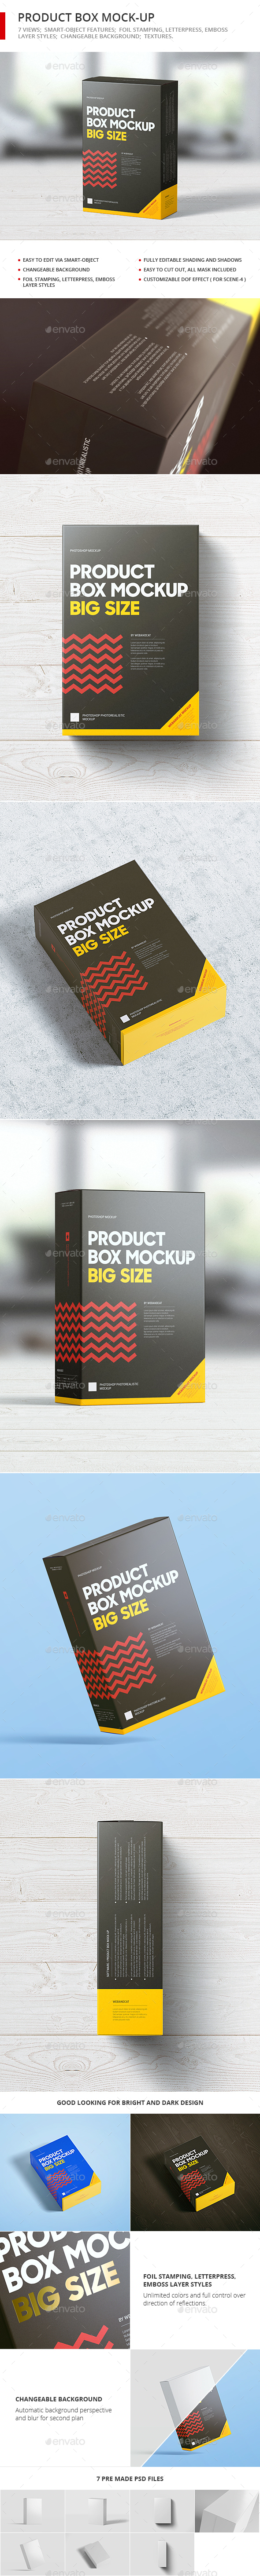 Product Box Mock-up - Food and Drink Packaging